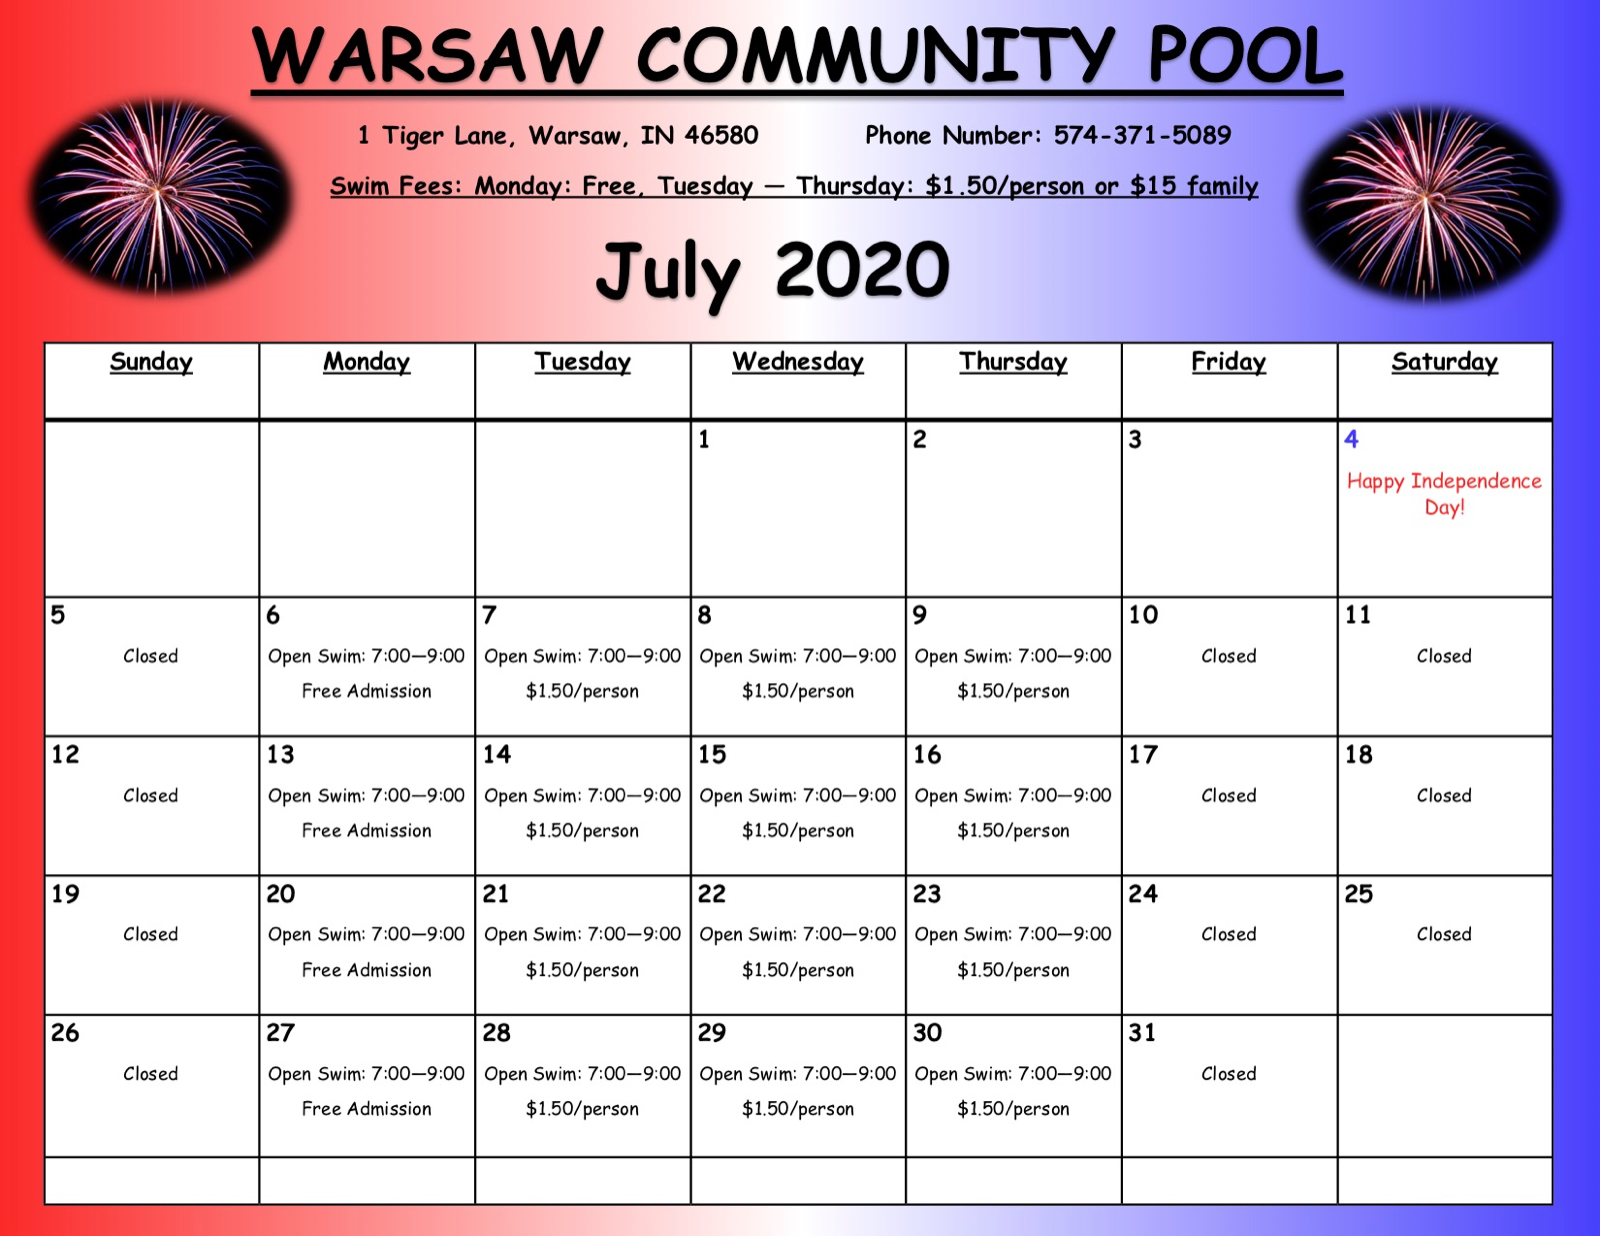 Warsaw Community Pool will re-open July 6th!